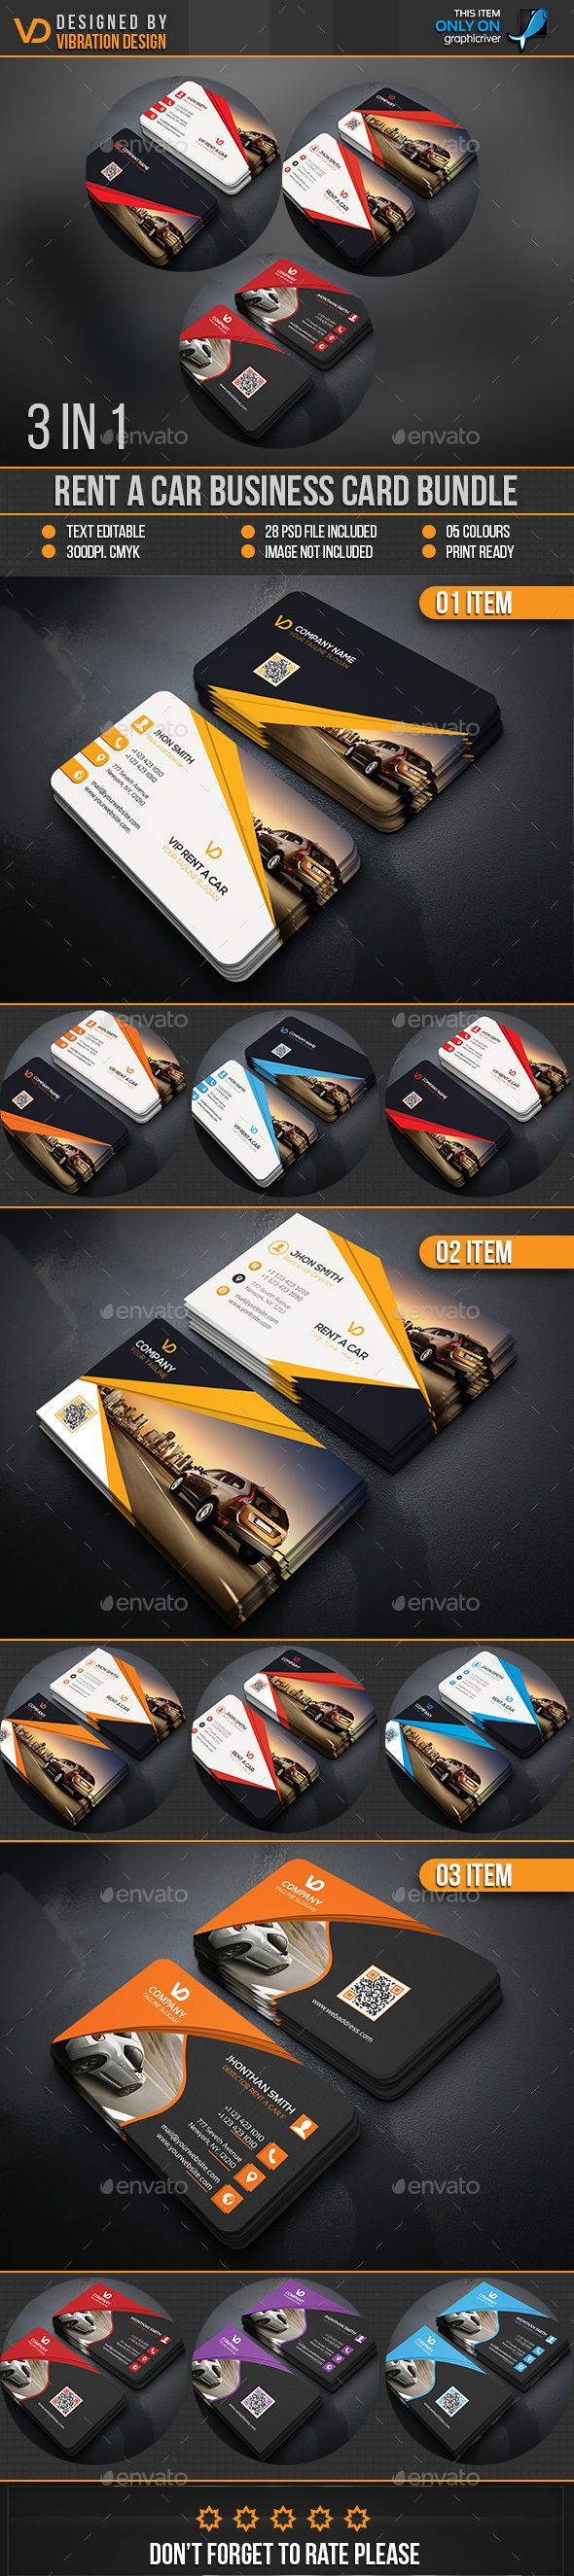 Rent A Car Business Card Bundle Templates PSD. Download here: http://graphicriver.net/item/rent-a-car-business-card-bundle/16663546?ref=ksioks